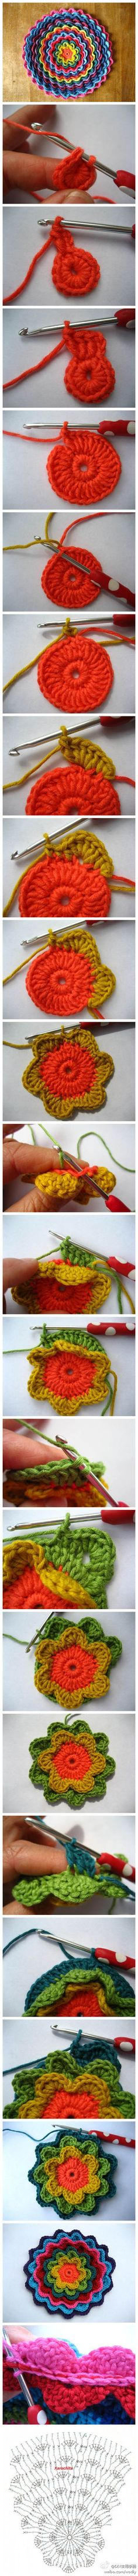 DIY crochet potholder, trivet, coaster, or whatever!